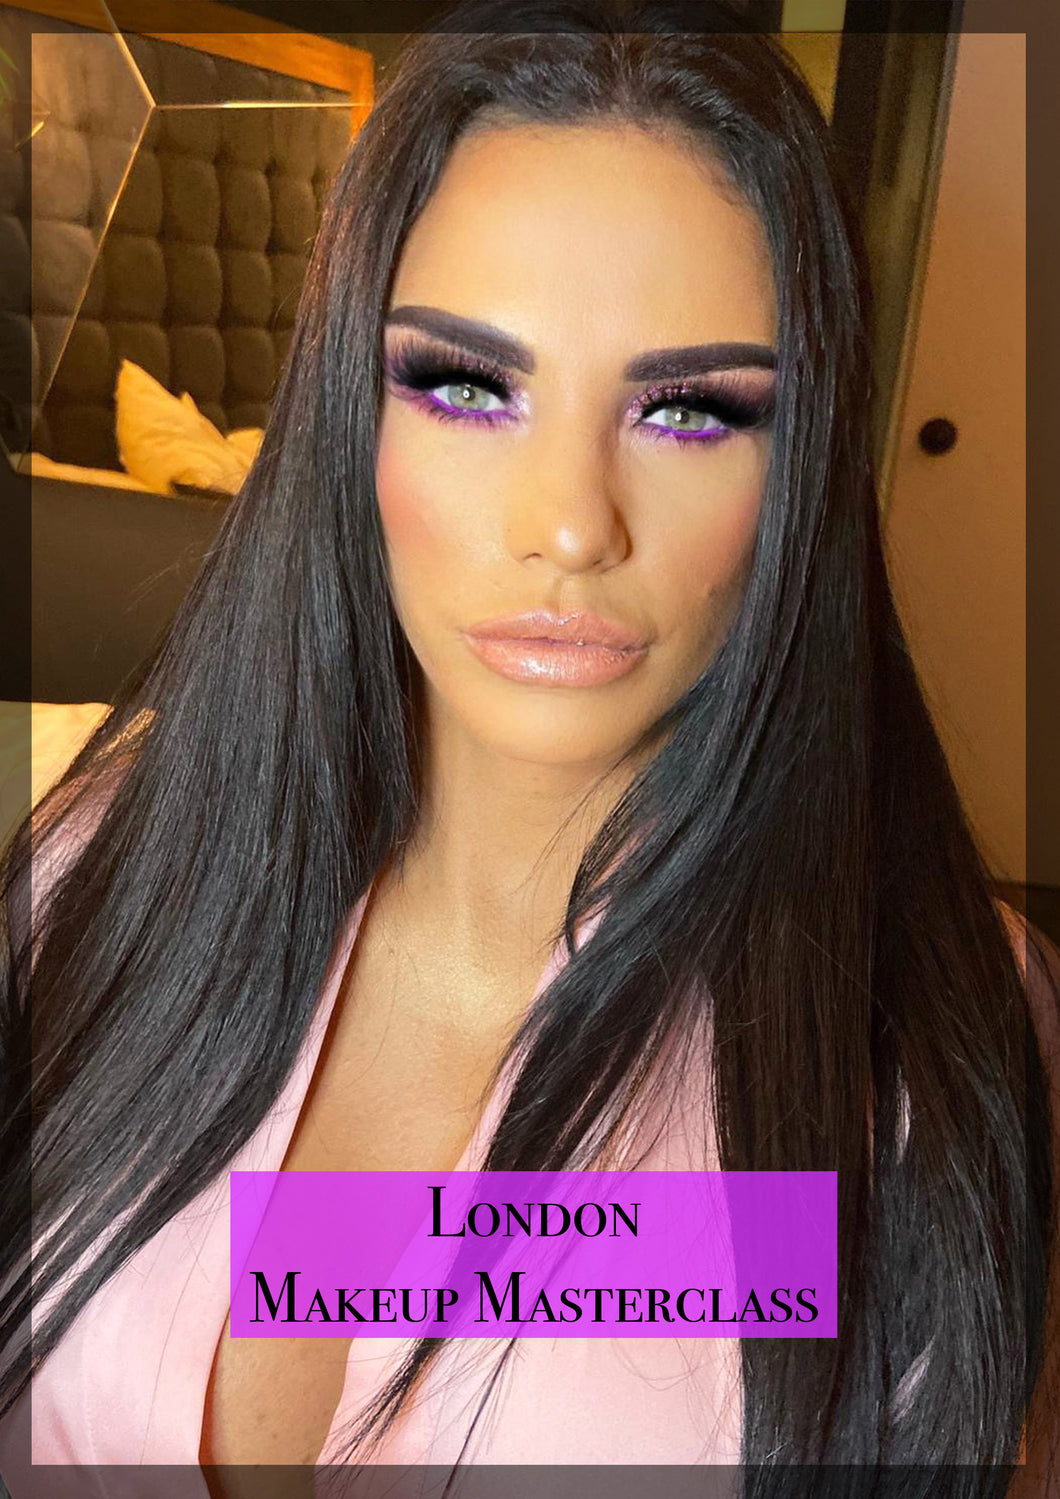 MAKEUP MASTERCLASS - LONDON 7TH MARCH 2020